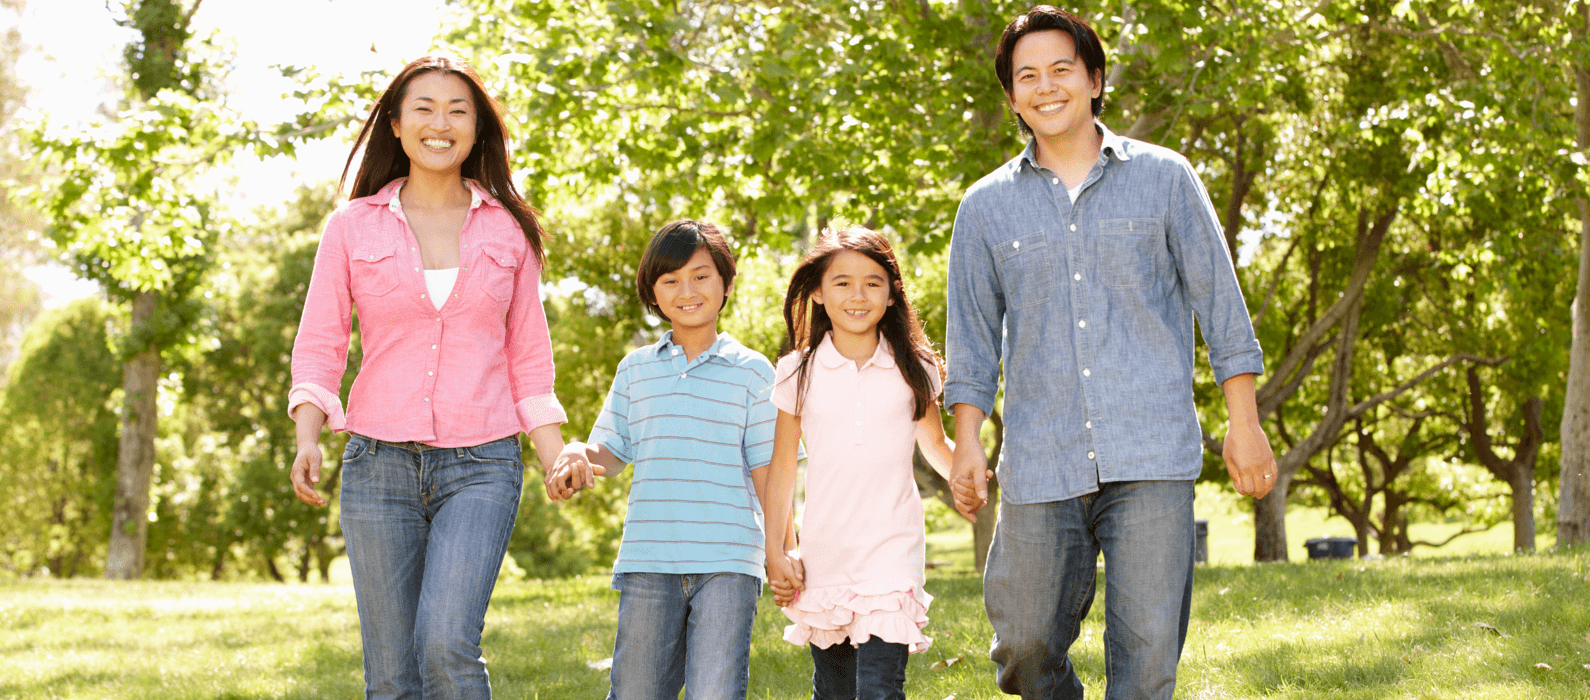 Why New Communities Are the Best Choice for Families Featured Image